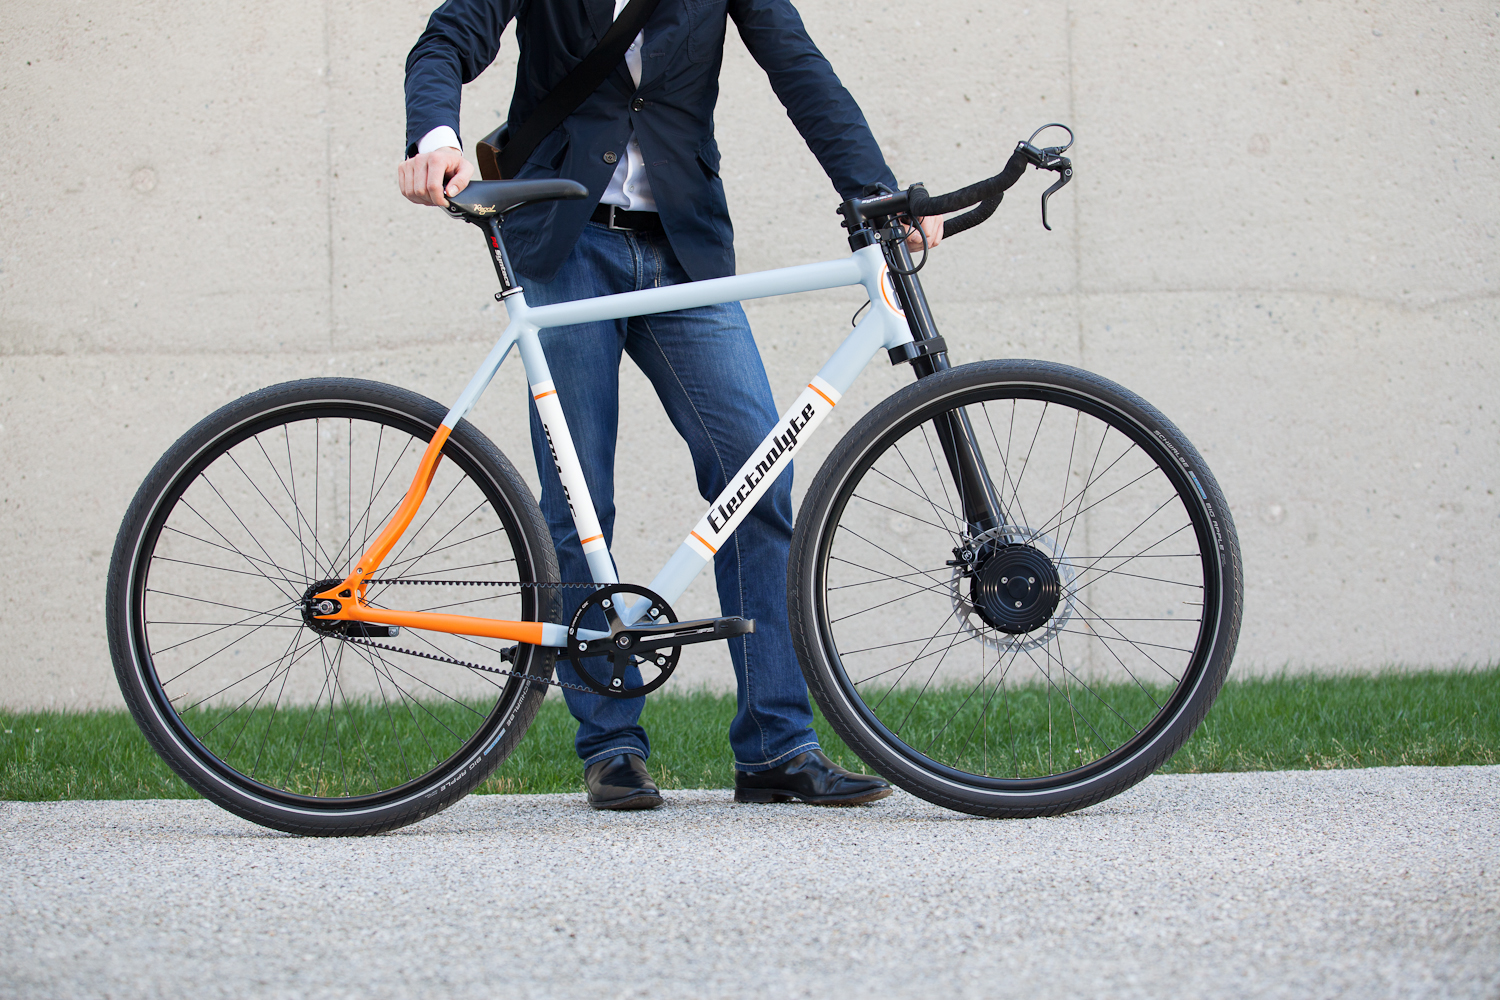 Electrolyte in Germany uses Gates Carbon Drive on its fast award-winning eBikes